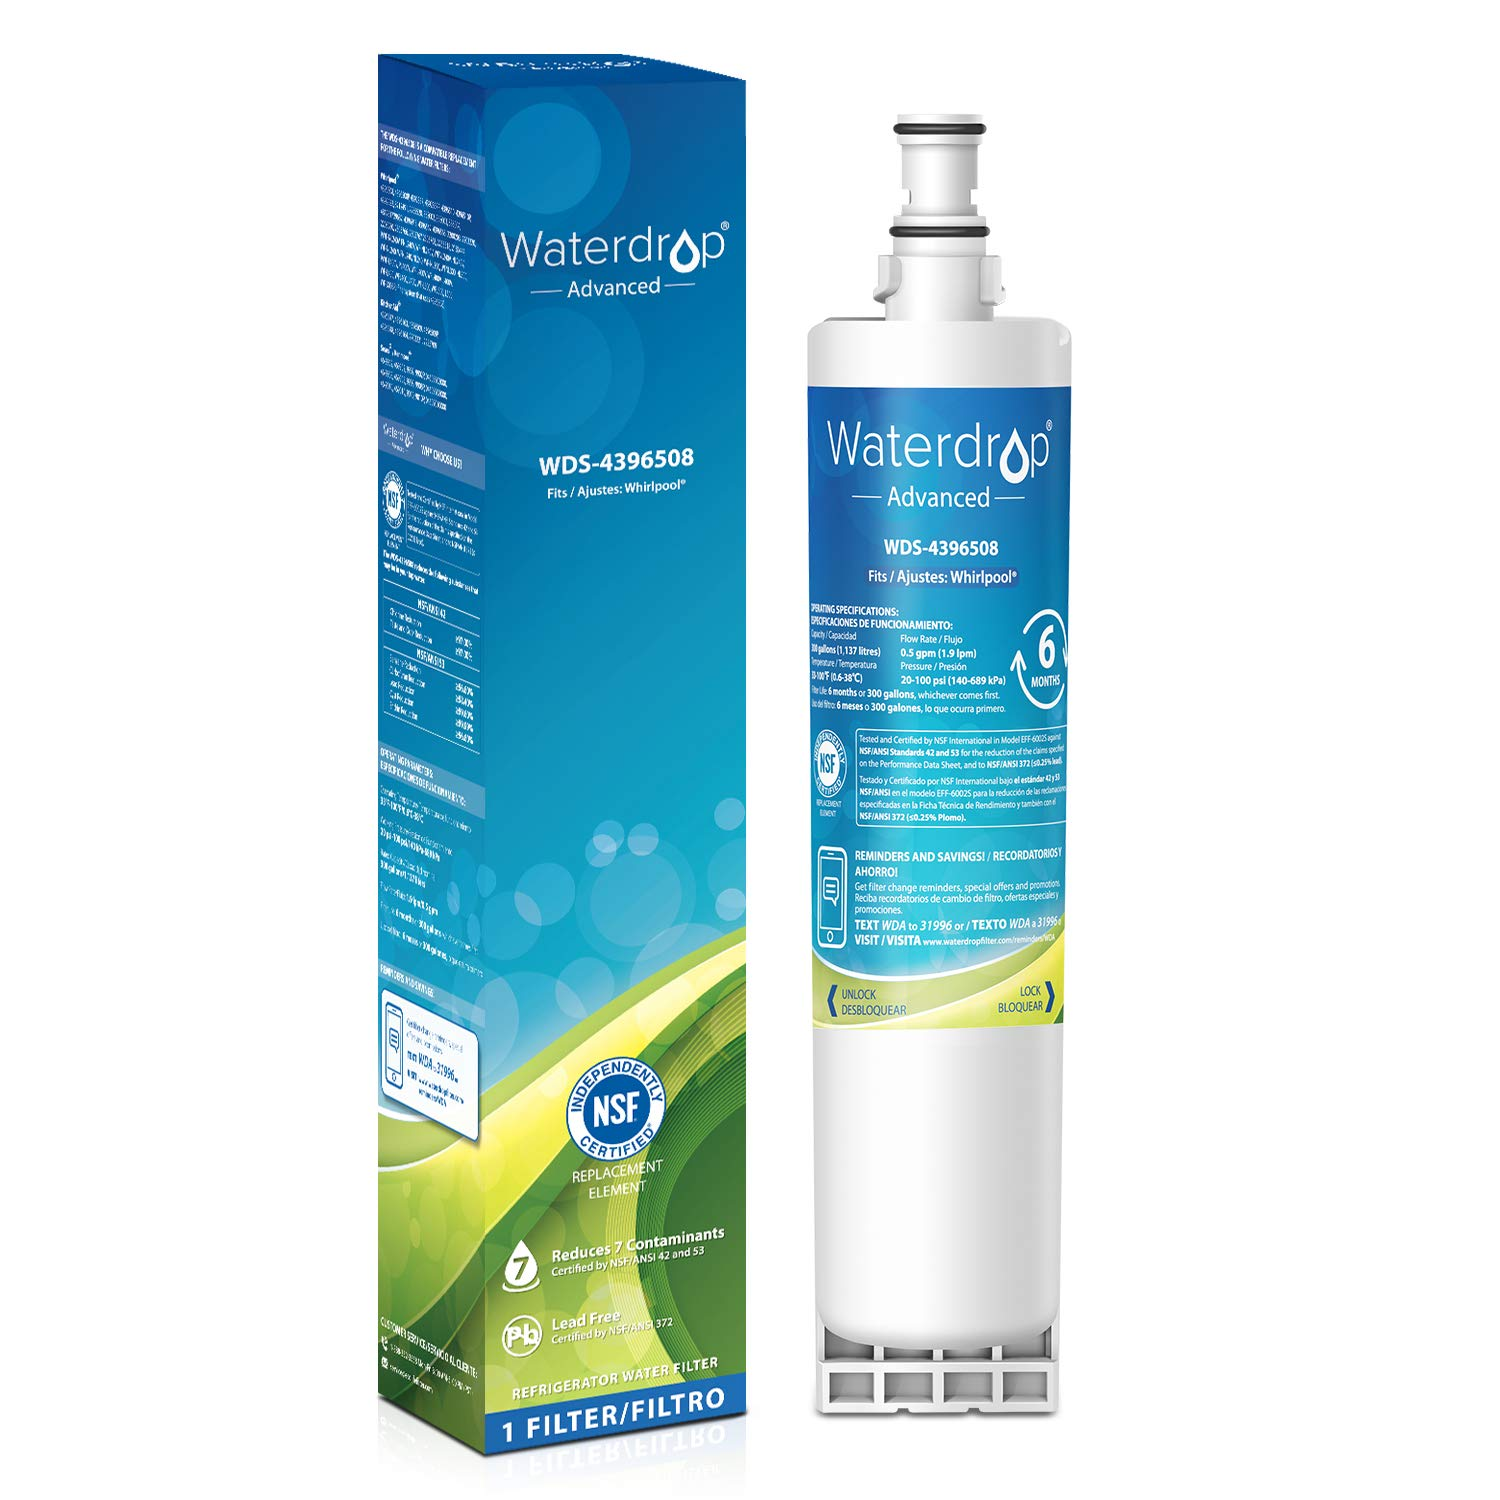 Waterdrop 4396508 NSF 53&42 Certified Refrigerator Water Filter, Compatible with Whirlpool 4396508, 4396510, 4392857, Kenmore 46-9010, NLC240V, EveryDrop Filter 5, EDR5RXD1, PUR W10186668, Pack of 1